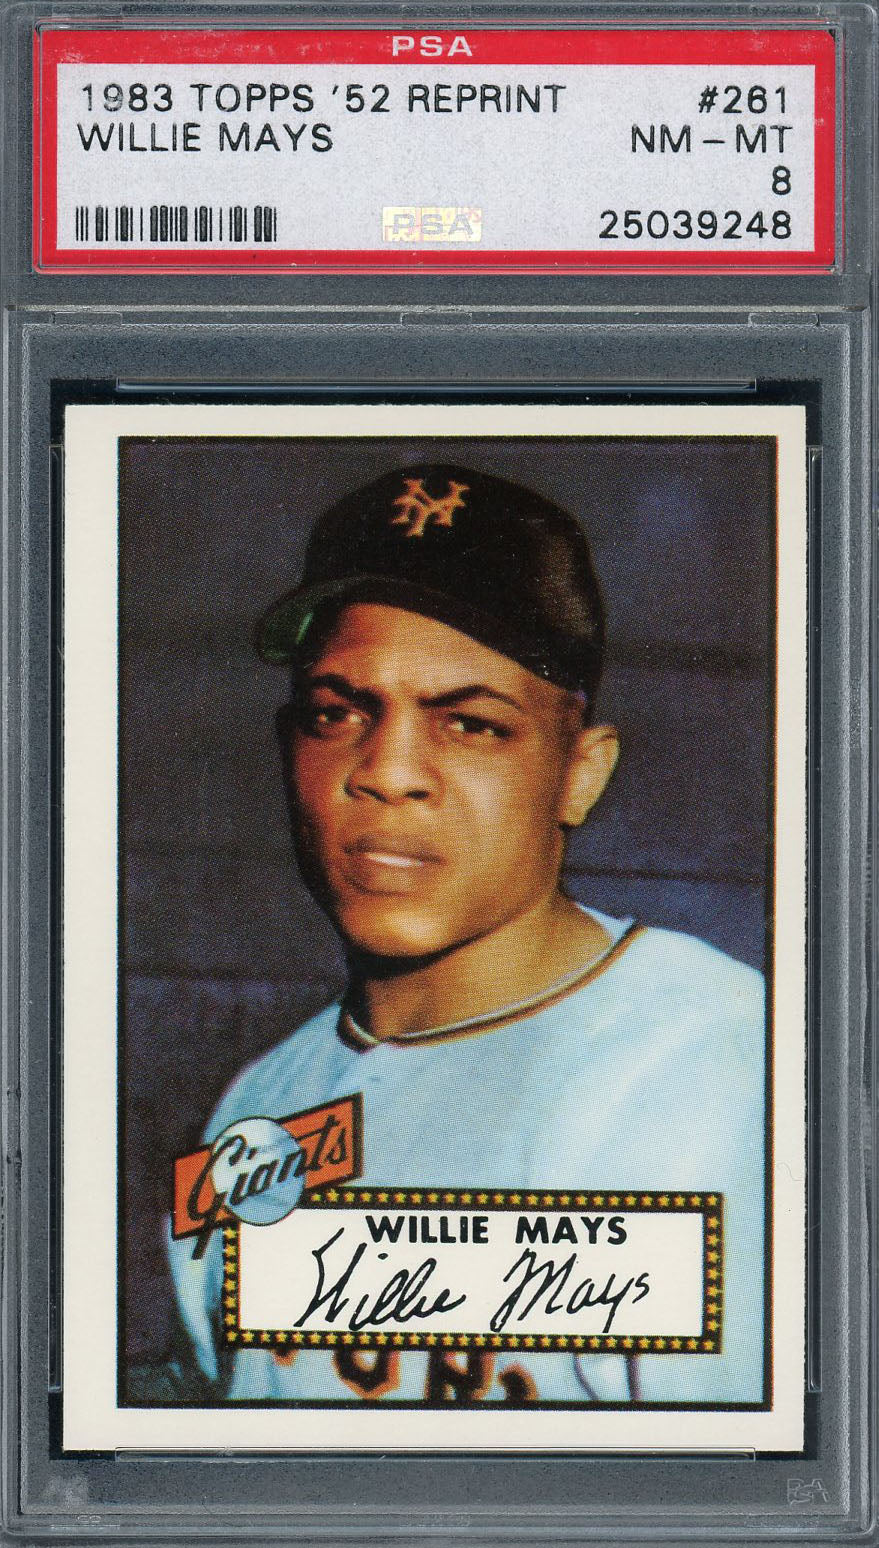 Willie Mays San Francisco Giants 1983 Topps 1952 Reprint Baseball Card #261 Graded PSA 8-Powers Sports Memorabilia